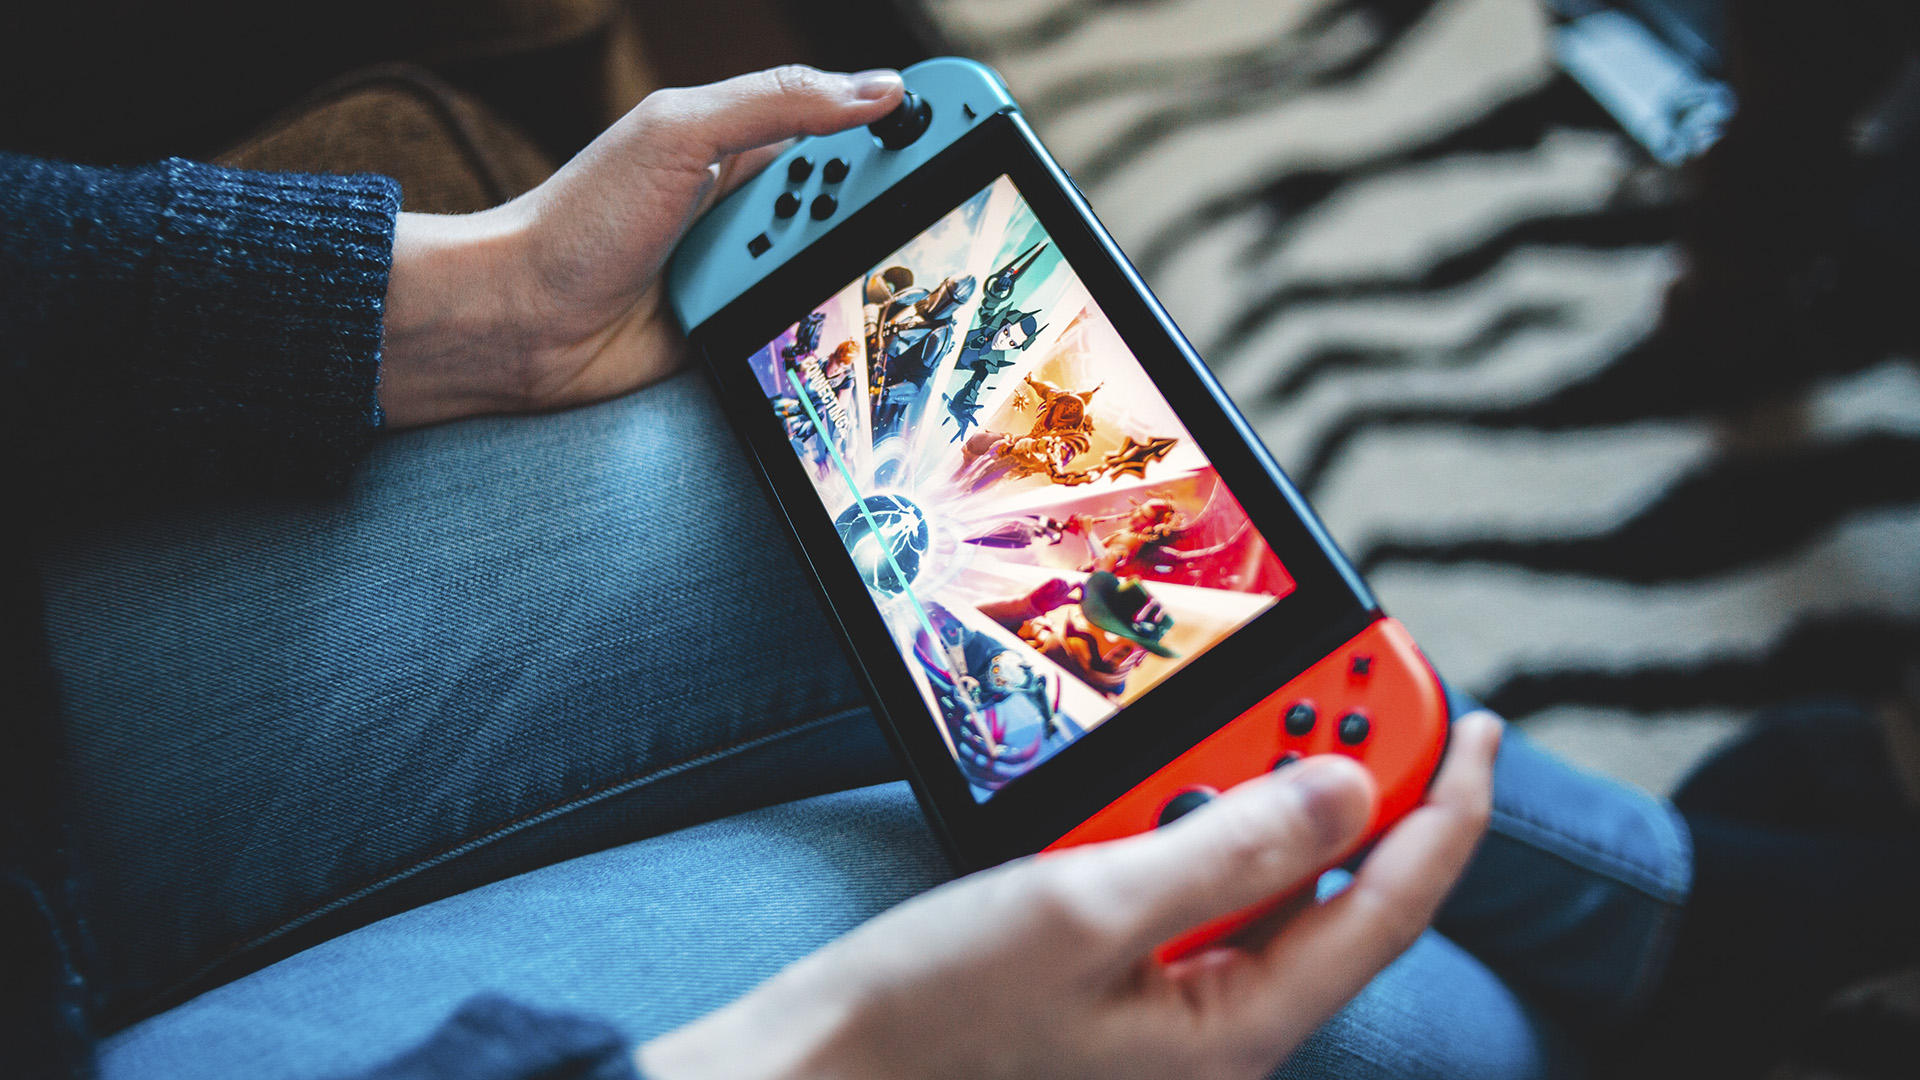 Video Games Could Help Treat Mental Health Issues